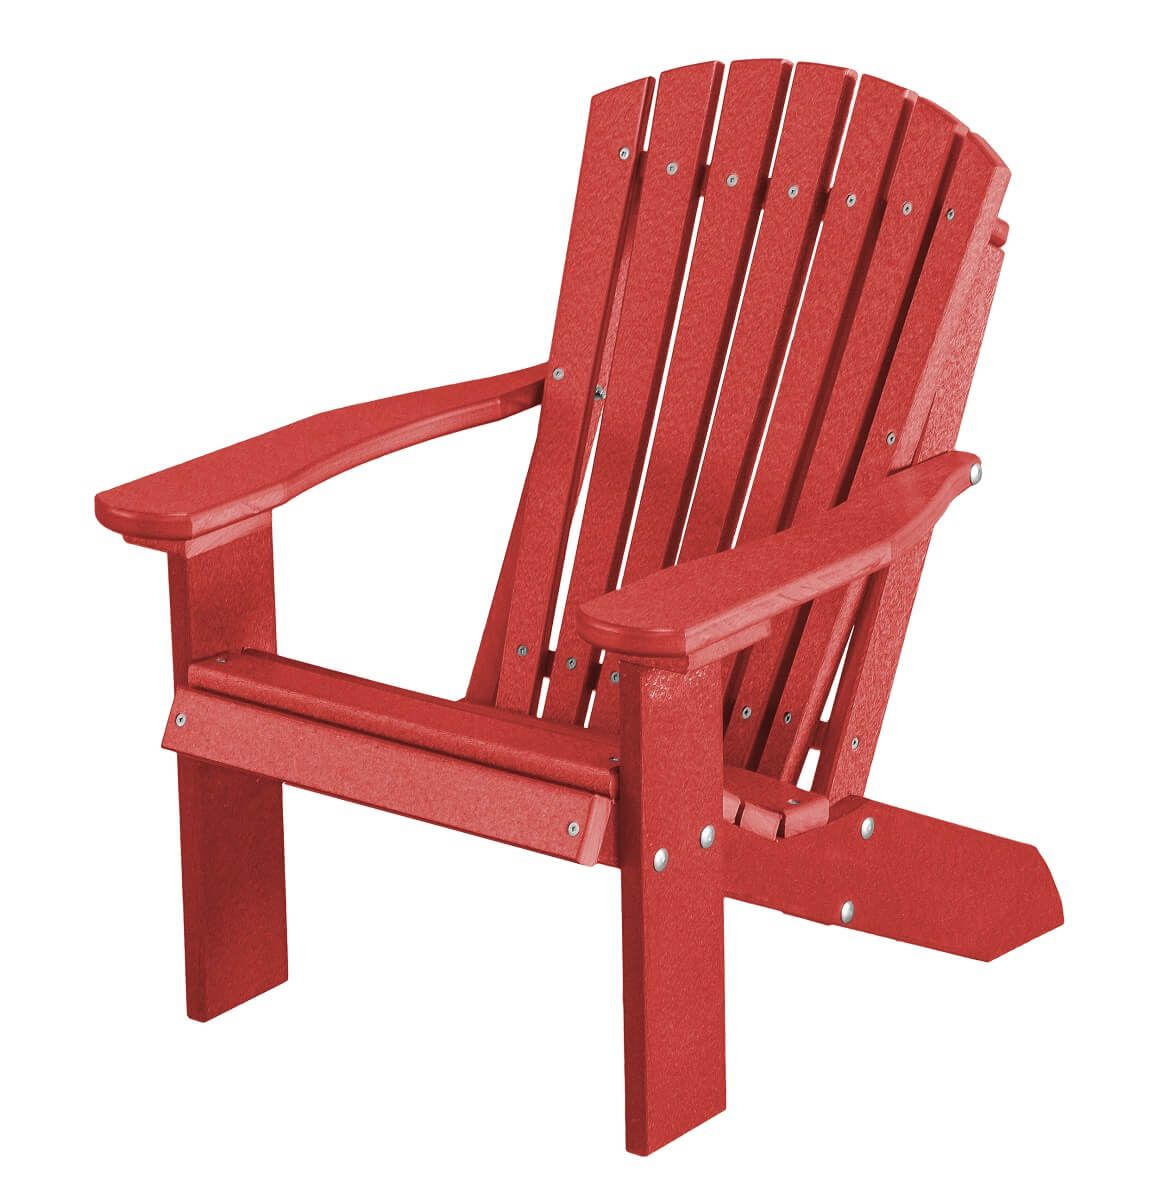 Cardinal Red Sidra Child's Adirondack Chair